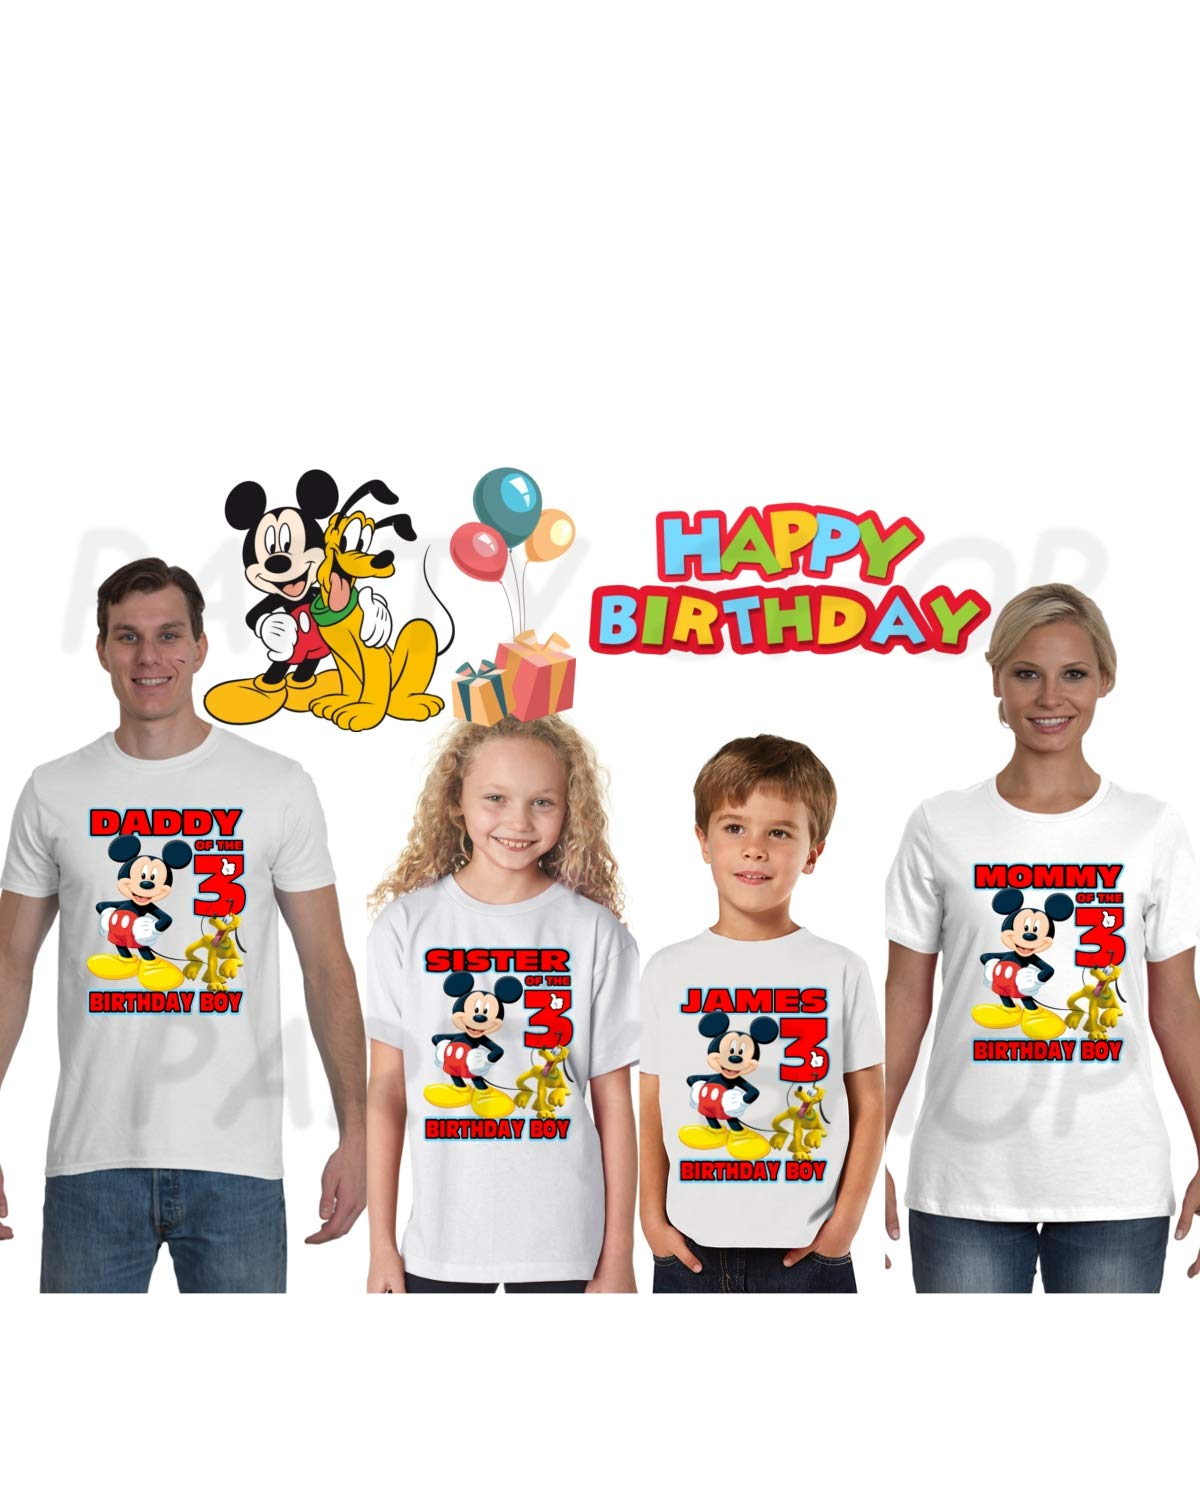 MICKEY MOUSE Birthday Shirt Mickey Mouse PartyADD Any Name And Age FAMILY Matching Shirts Boys Girls